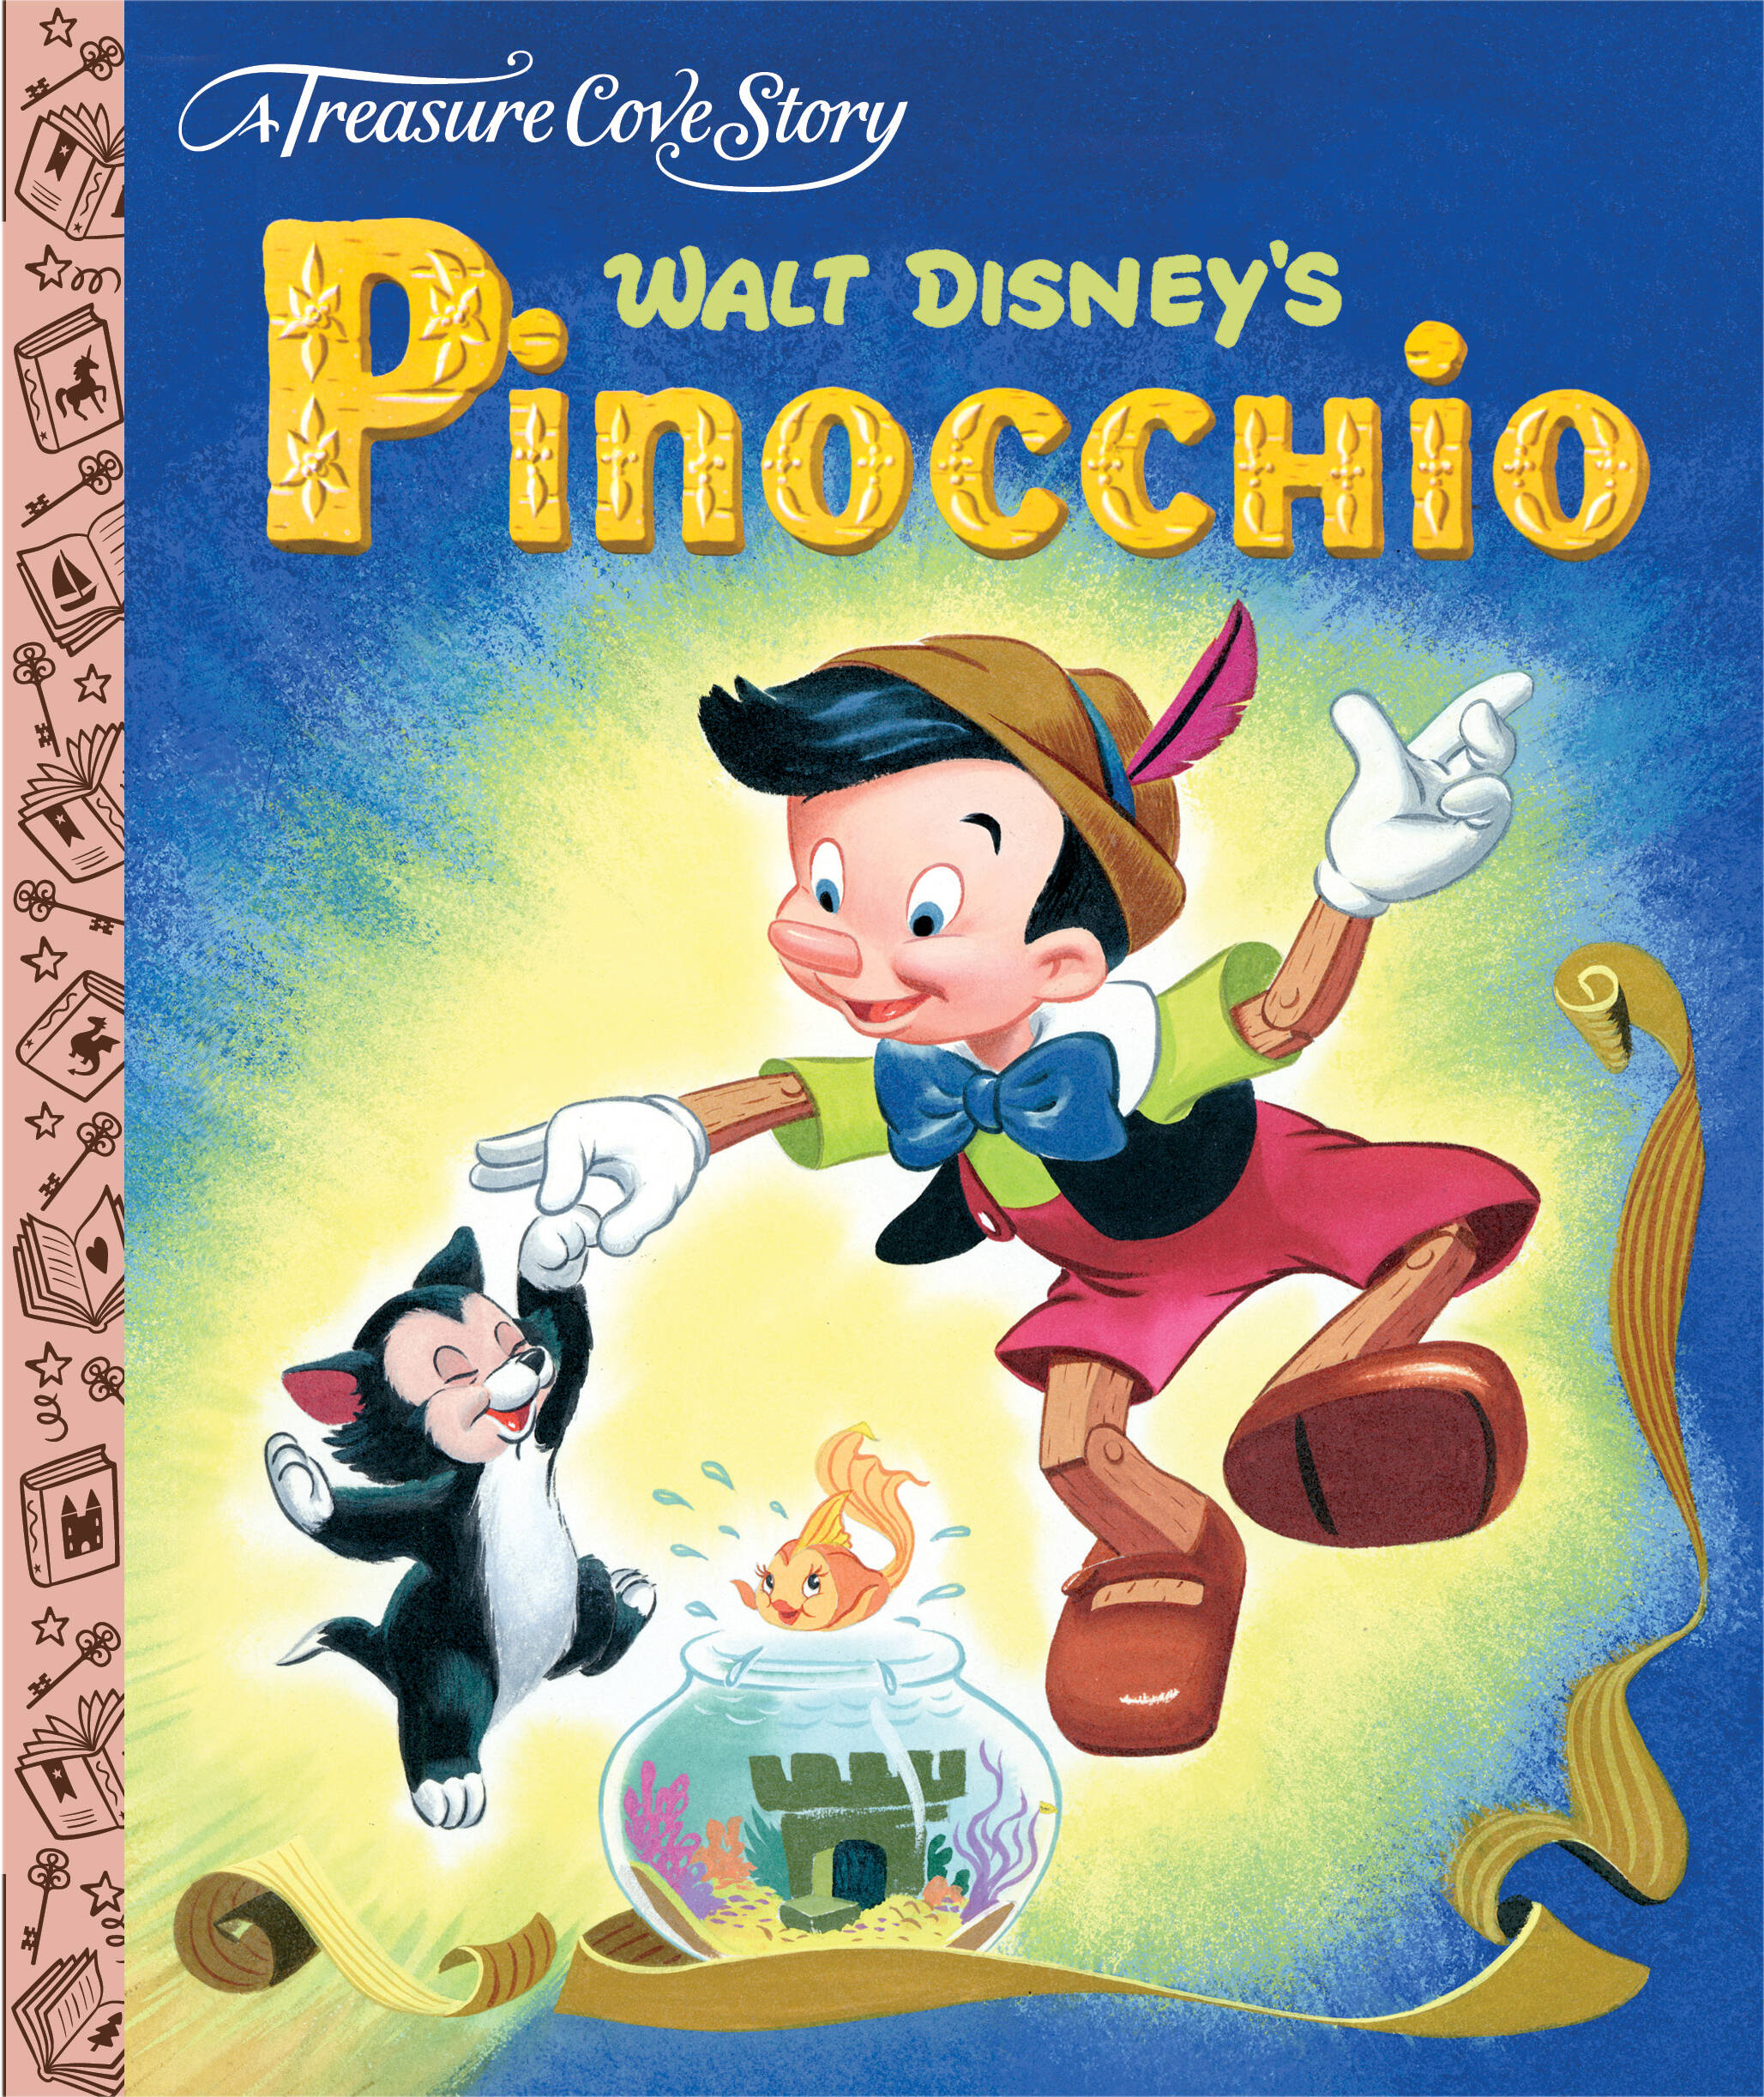 Disney Pinocchio - Treasure Cove Stories